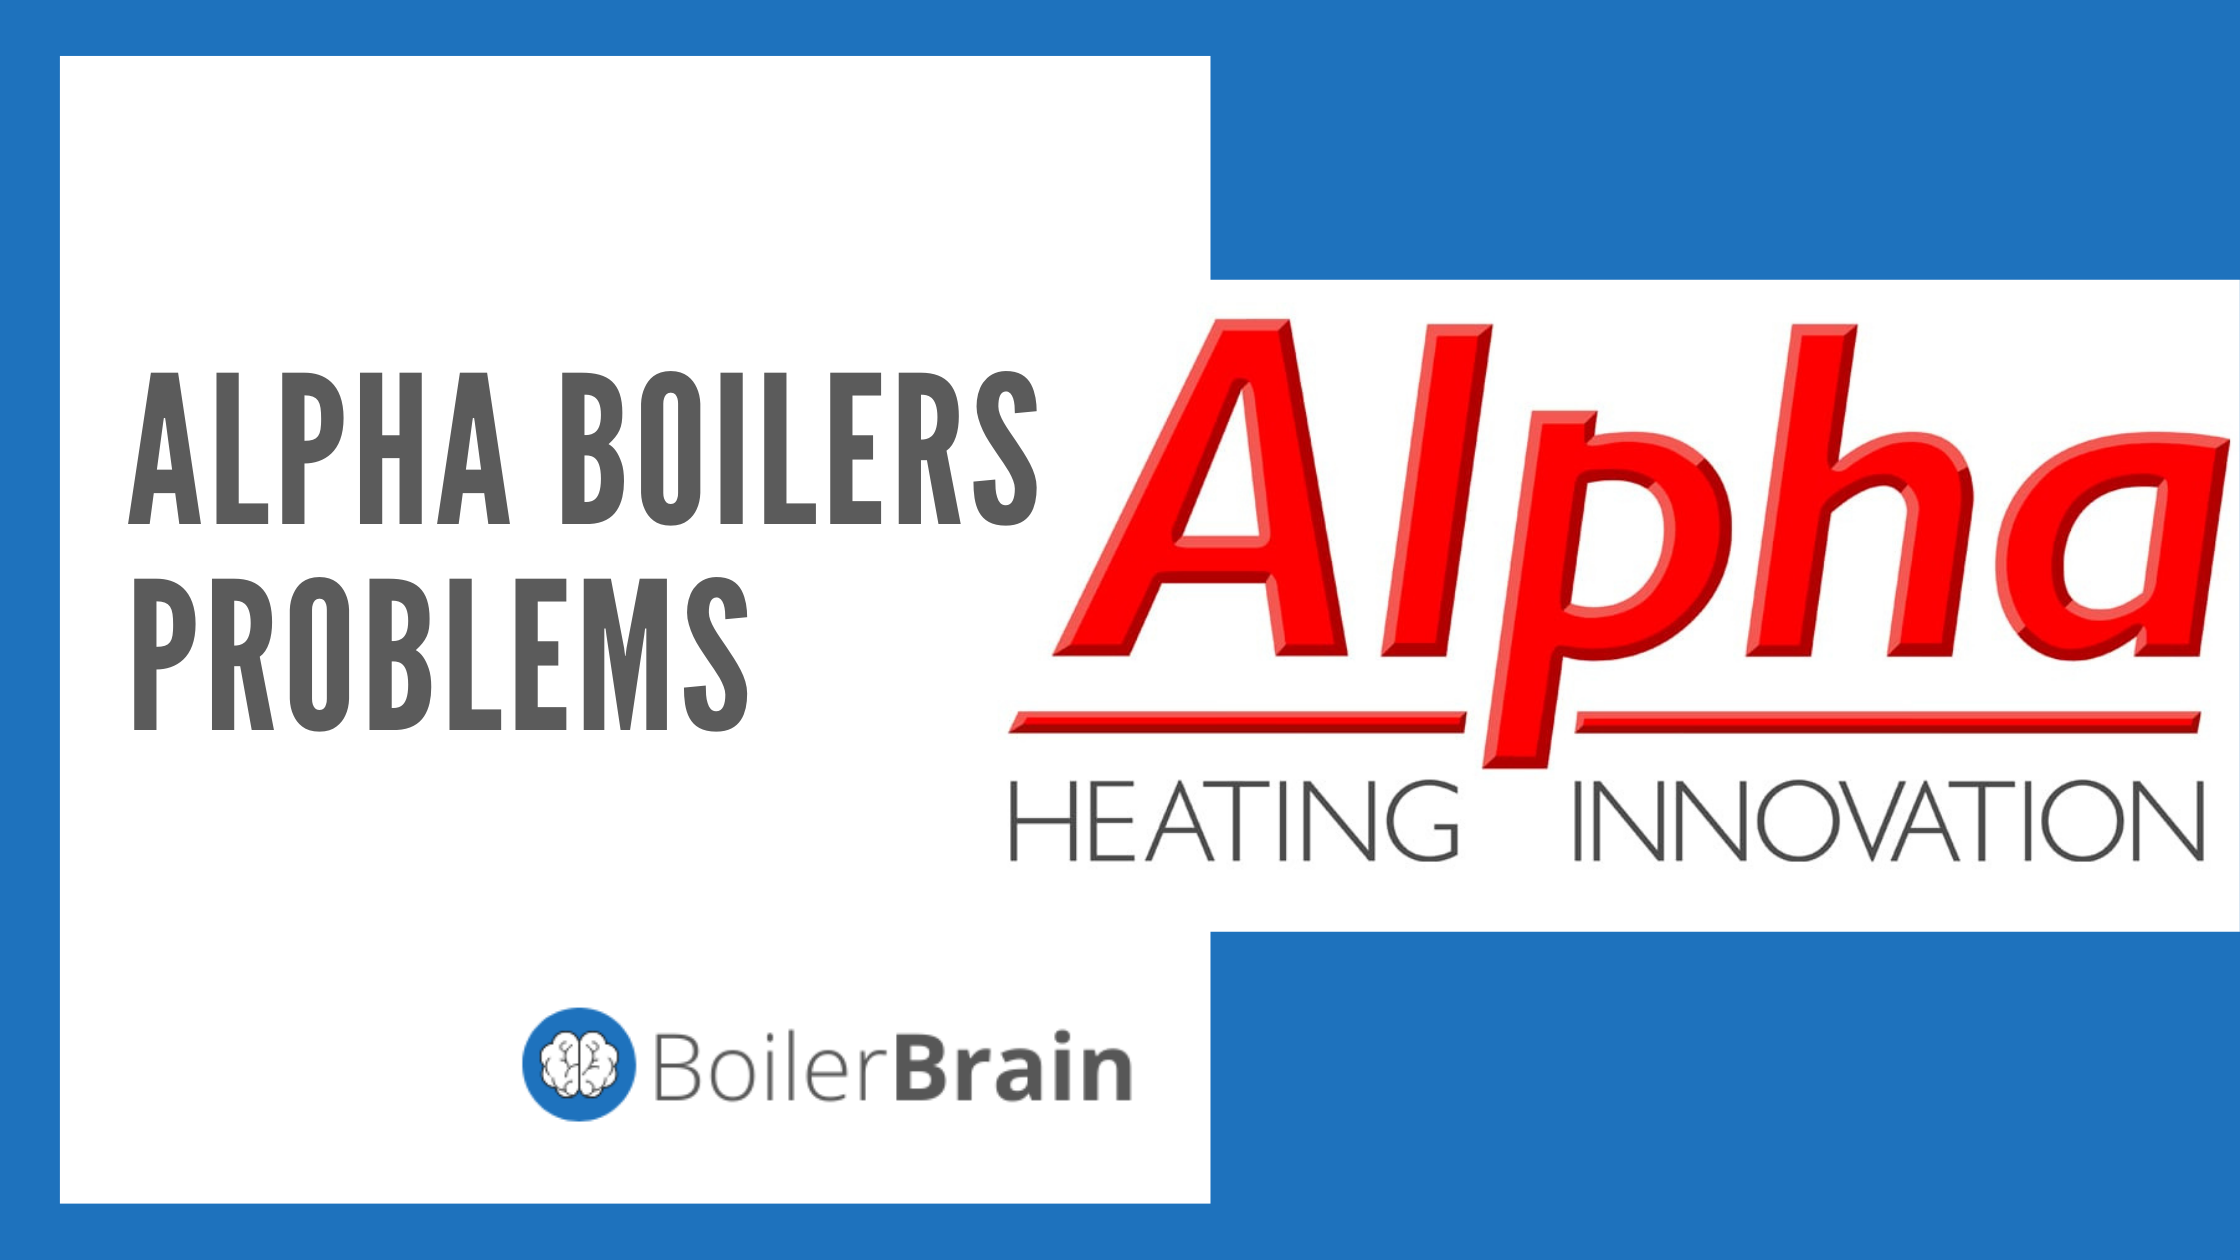 Common Alpha Boilers Problems